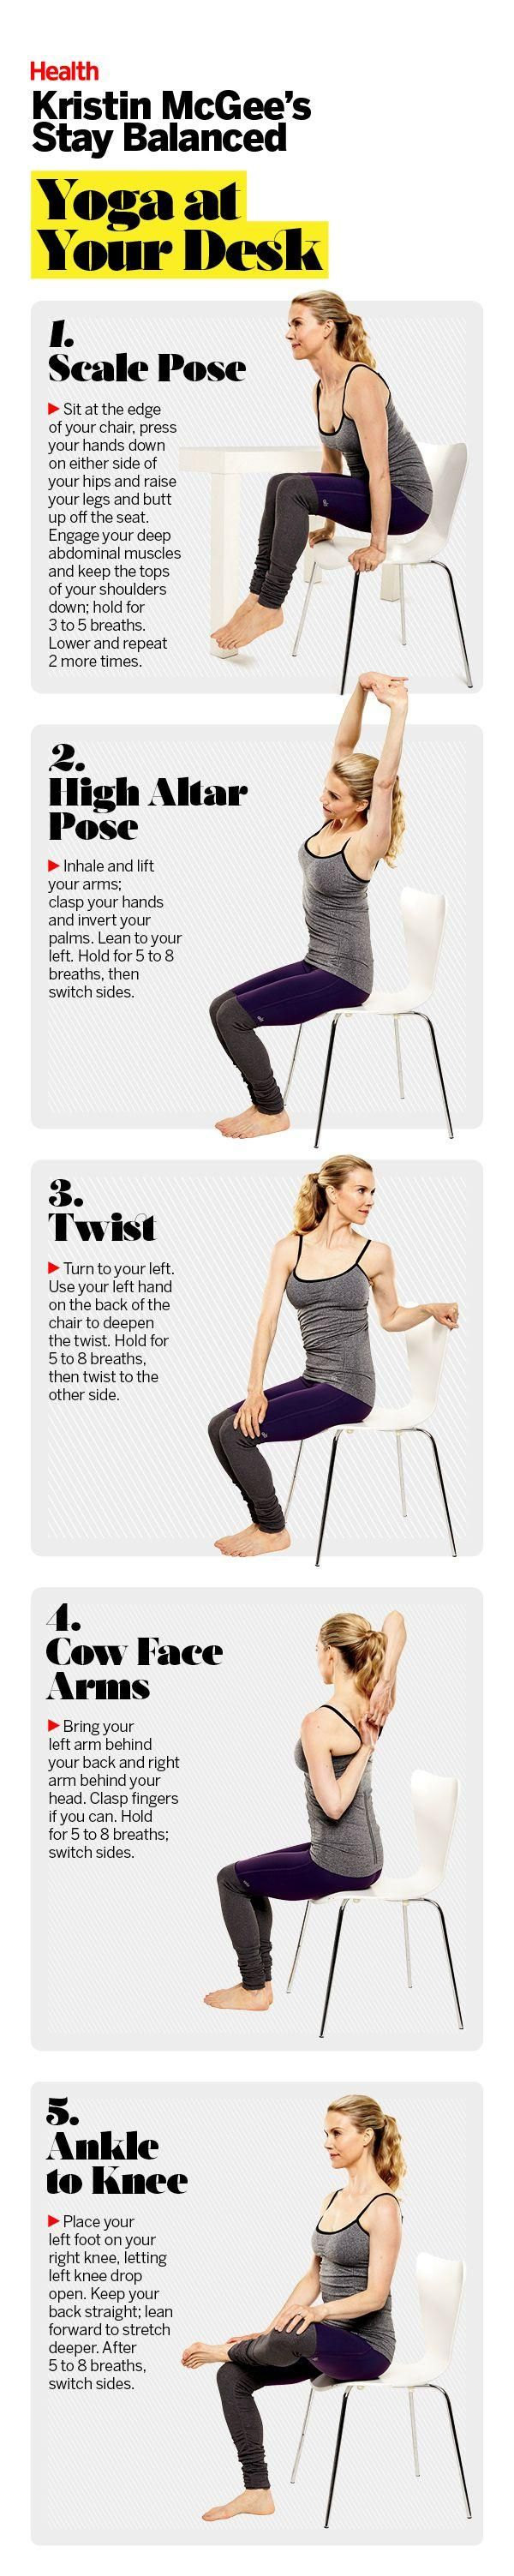 5 Yoga Poses You Can Do at Your Desk: Stuck at your desk all day? Try doing yoga at work. These yoga moves ease neck and back strain, and let you slip in quick toning.